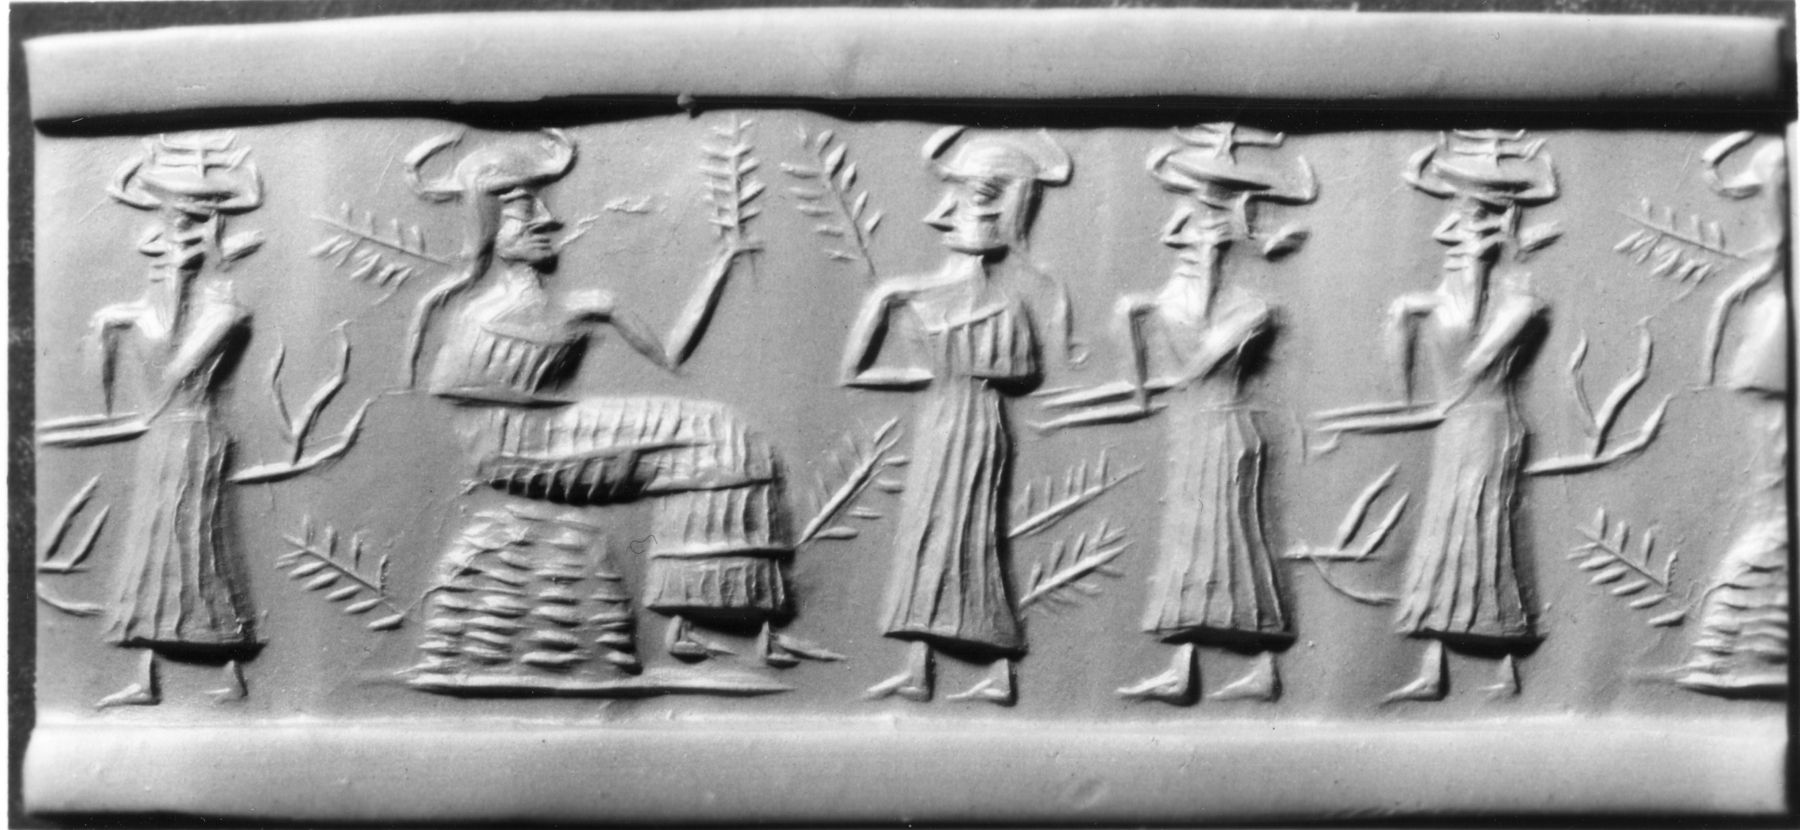 3c - Nisaba, Ninlil, & 2 unidentified gods, Nisaba the grain goddess, when the gods did the work, many complained that the work-loads were too much, and never-ending, some went on strike demanding replacements, Enlil refused to let up, he demanded they continue on